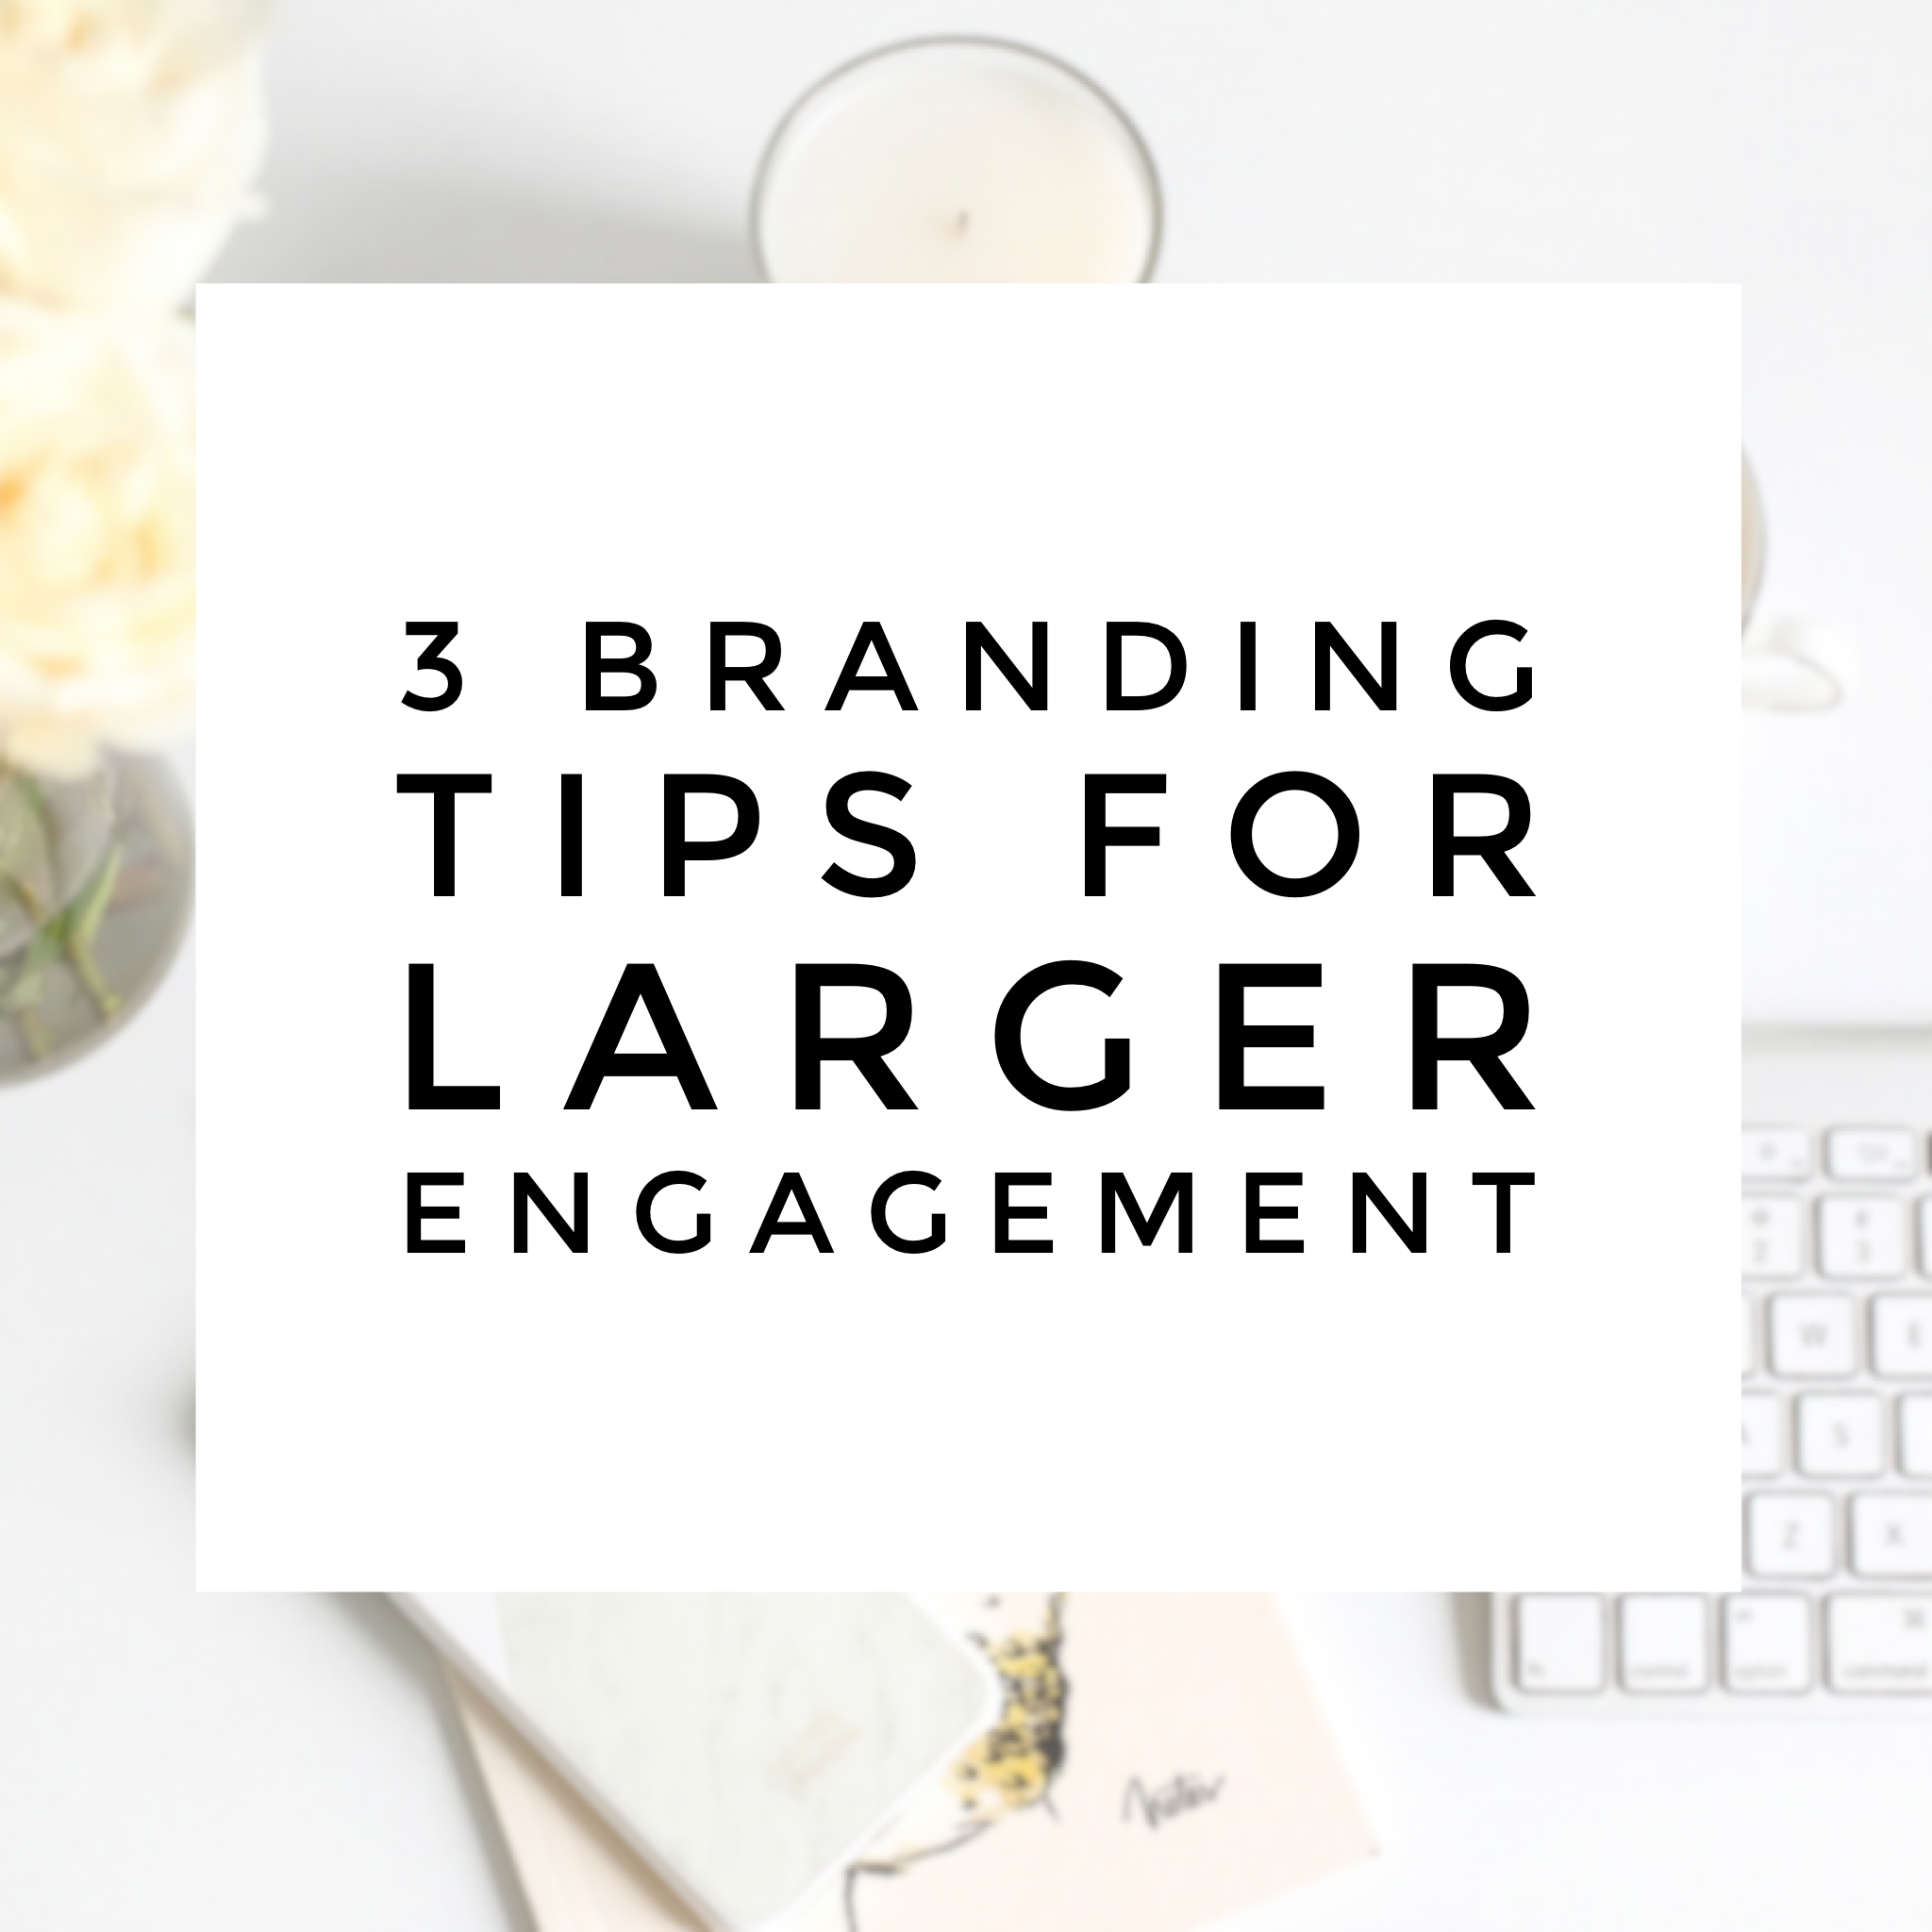 branding-tips-for-larger-engagement